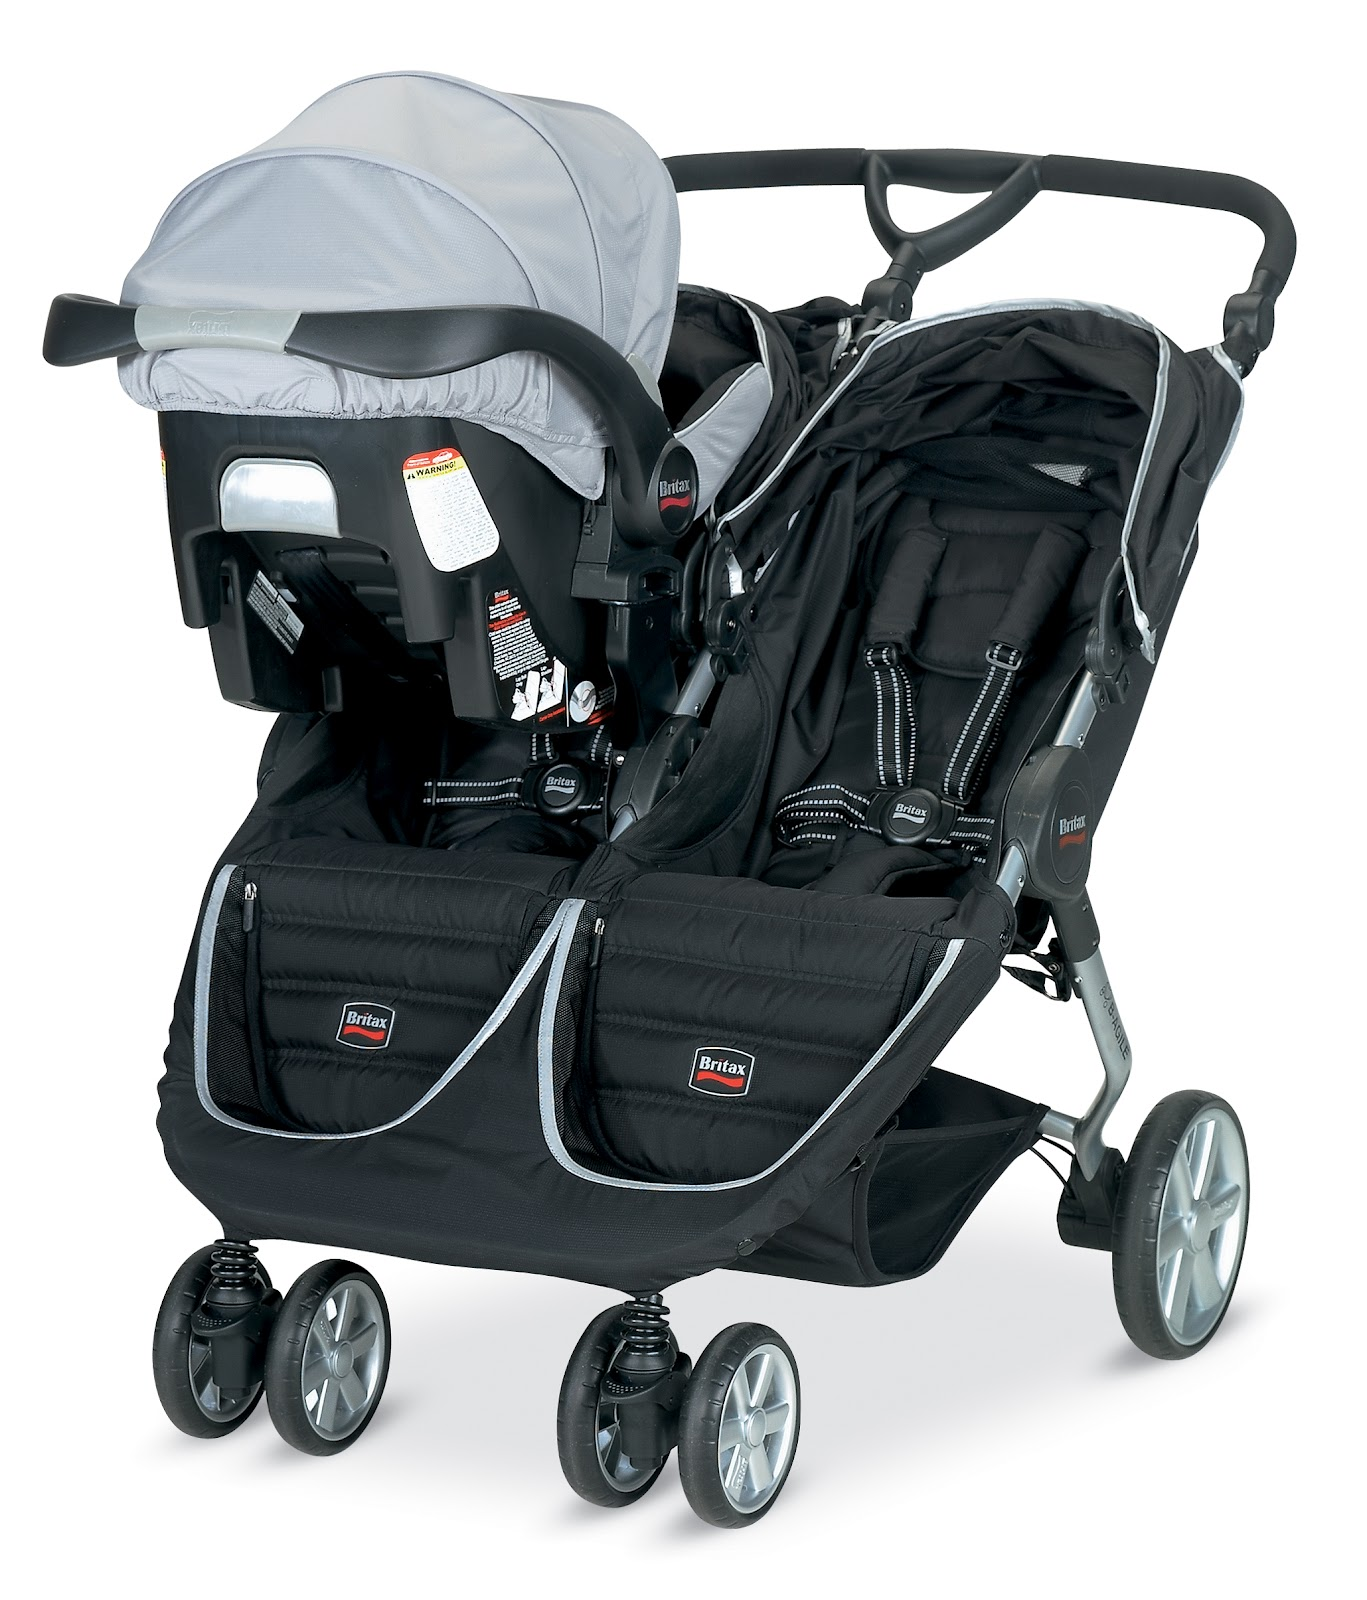 Britax Travel System An Overview De Su Mama